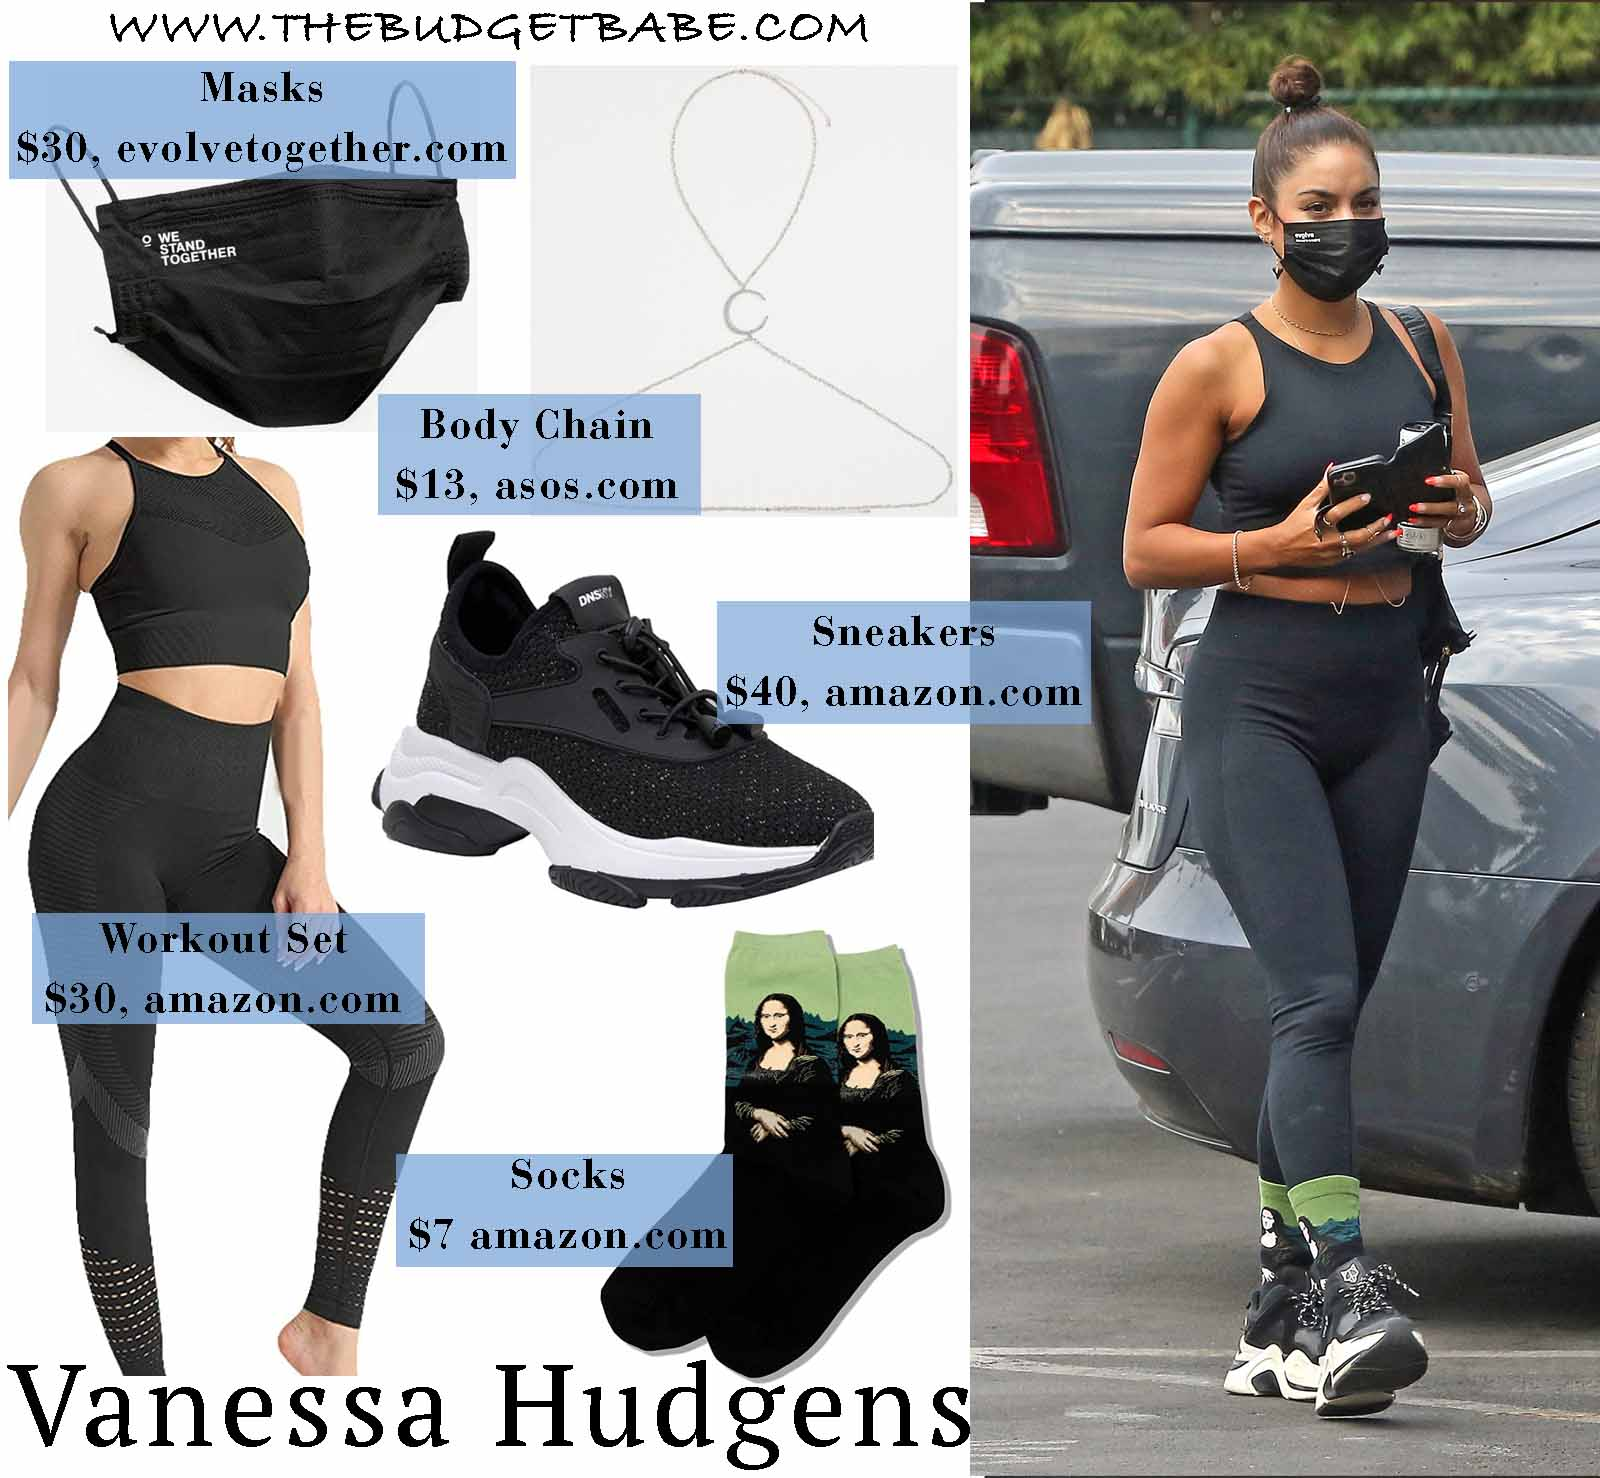 Vanessa Hudgens styles up her workout wear!